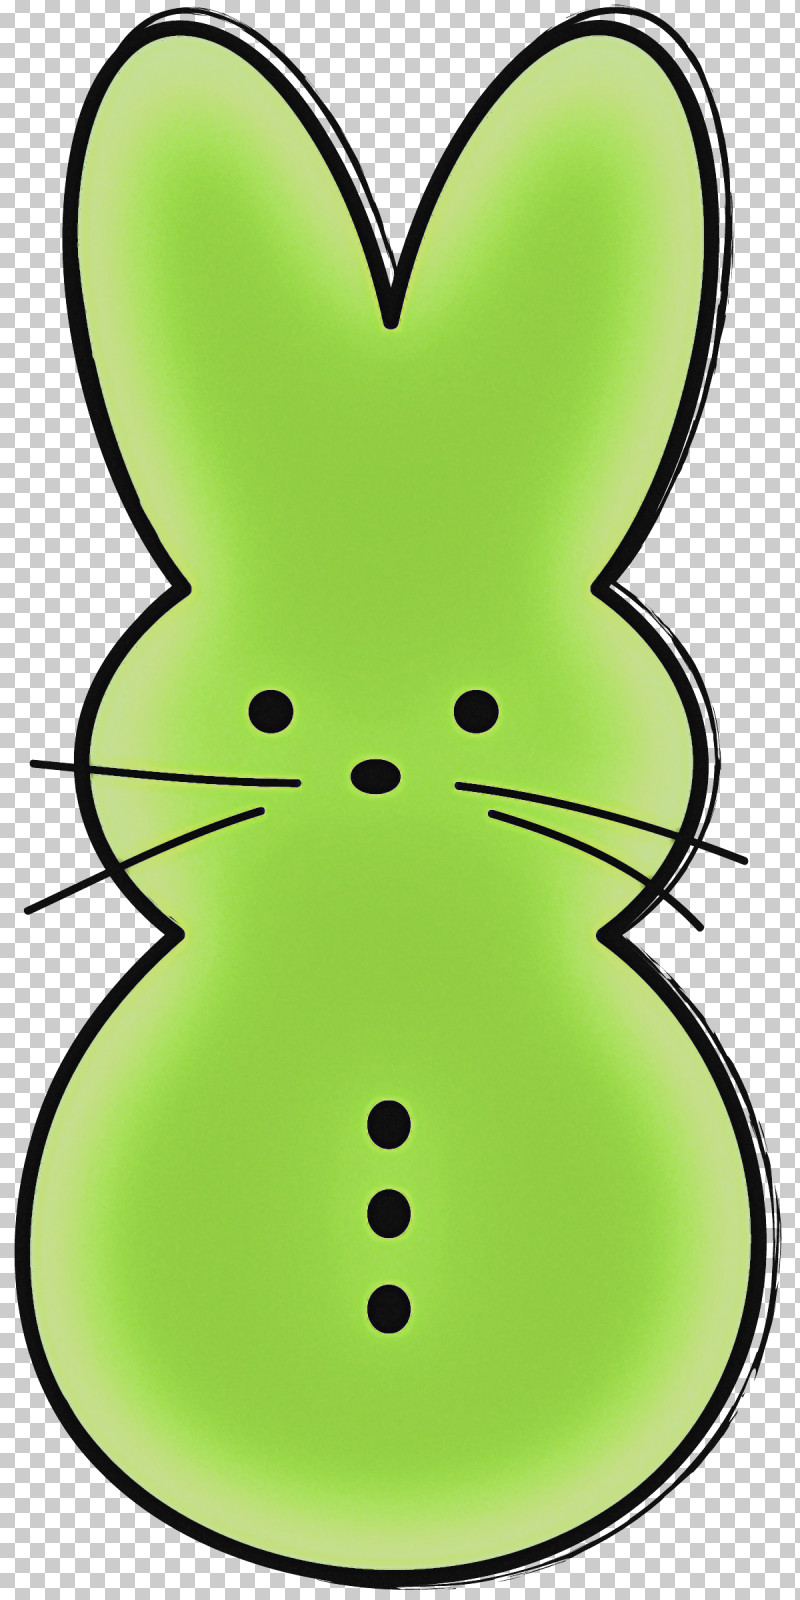 Green Cartoon Rabbits And Hares Rabbit Whiskers PNG, Clipart, Cartoon, Green, Rabbit, Rabbits And Hares, Whiskers Free PNG Download